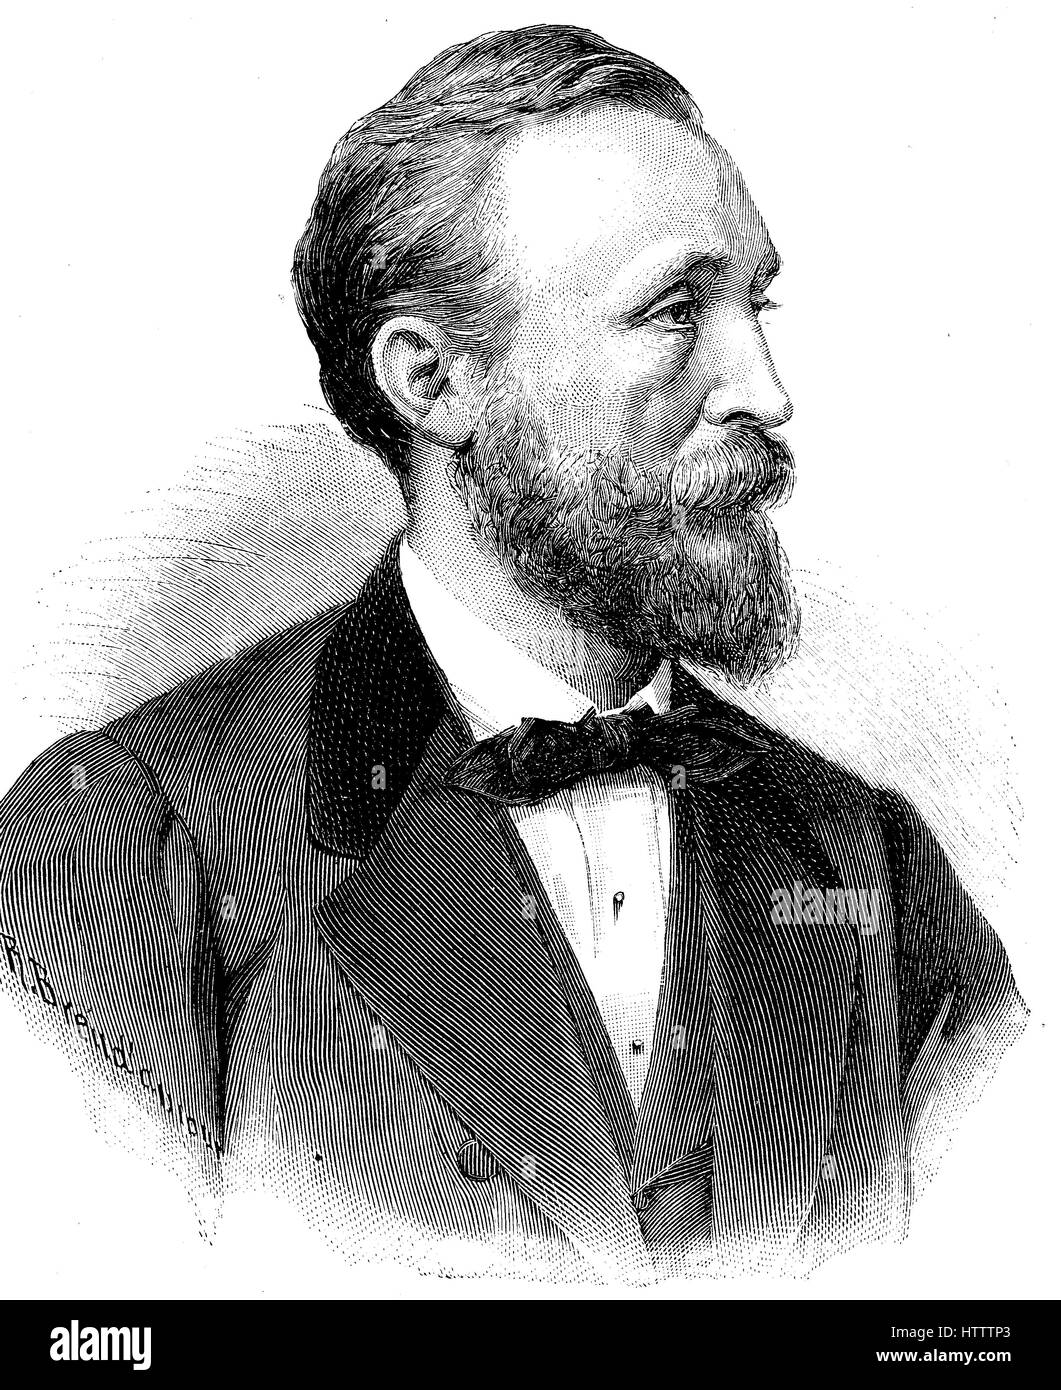 Heinrich von Stephan, born Ernst Heinrich Wilhelm Stephan, January 7, 1831 - April 8, 1897, was a general post director - Stock Image